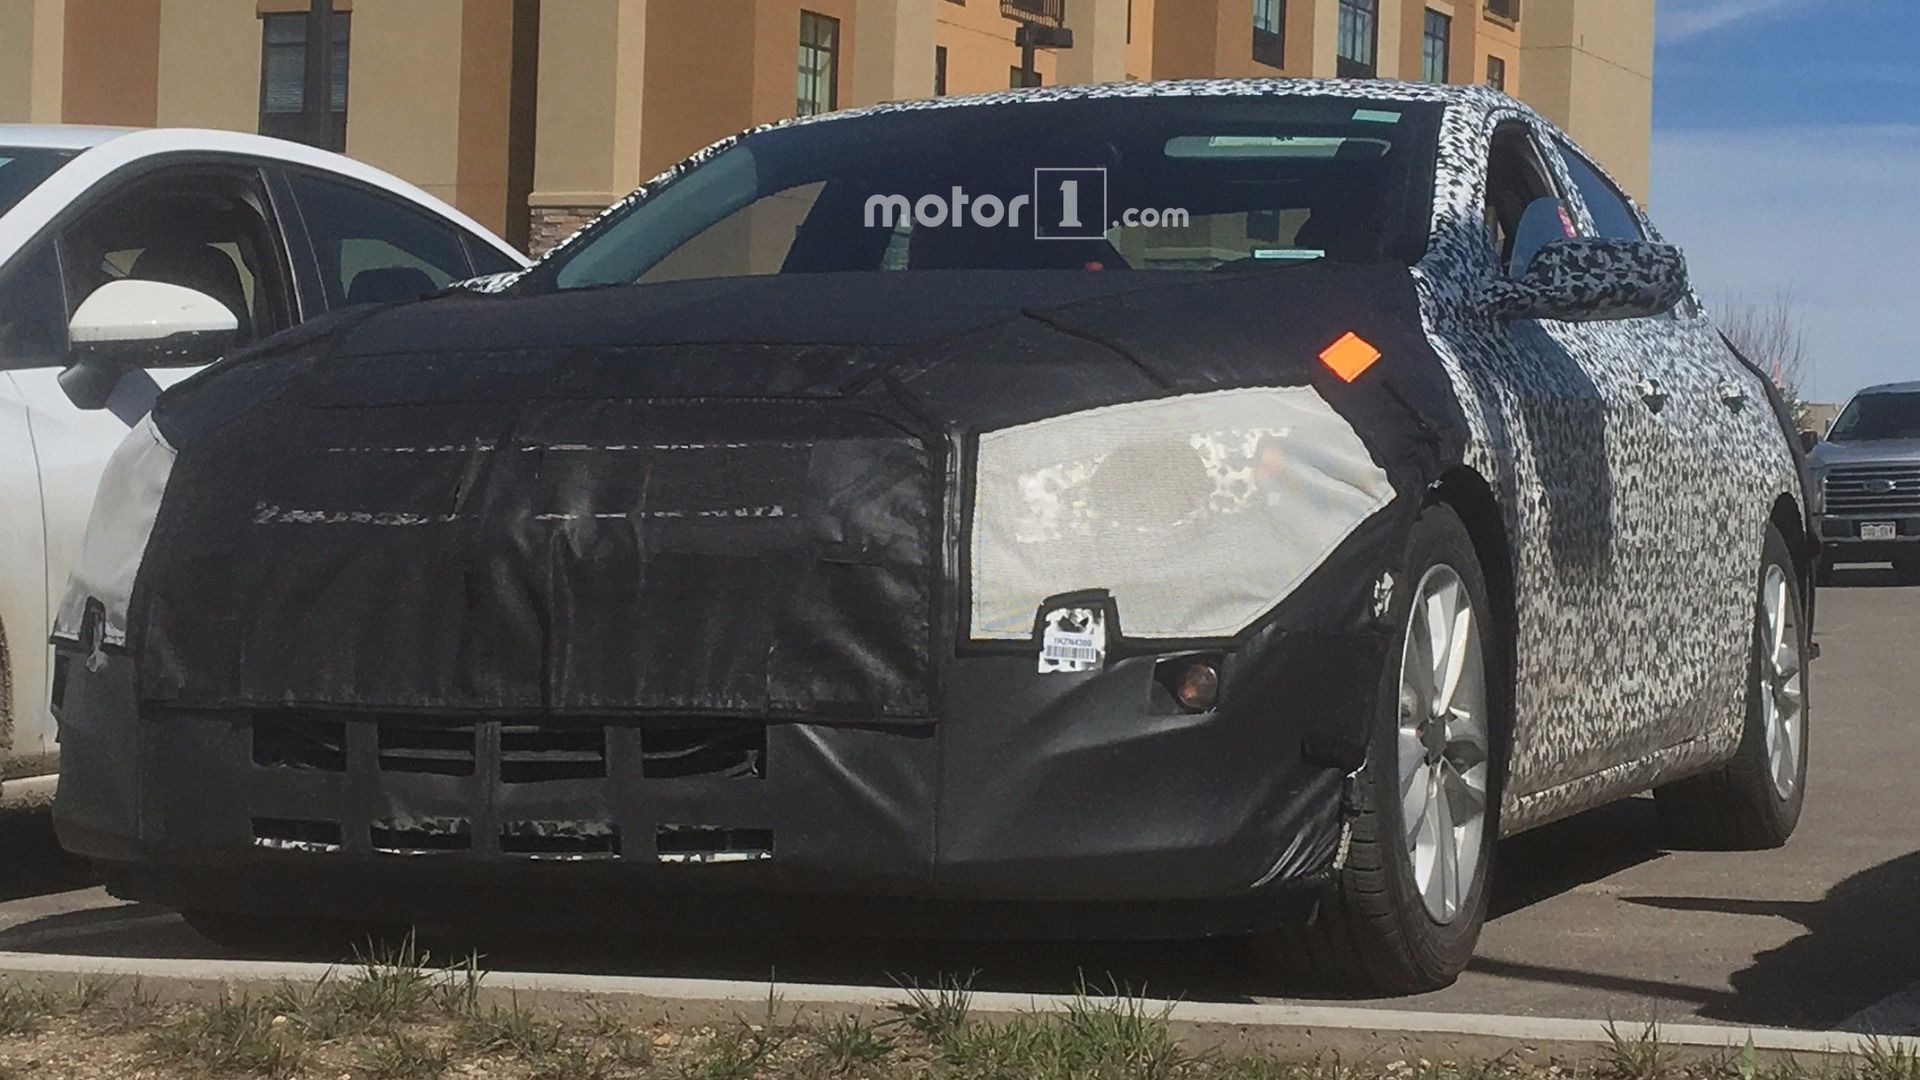 2019 Chevy Malibu Spied Preparing For Nip And Tuck